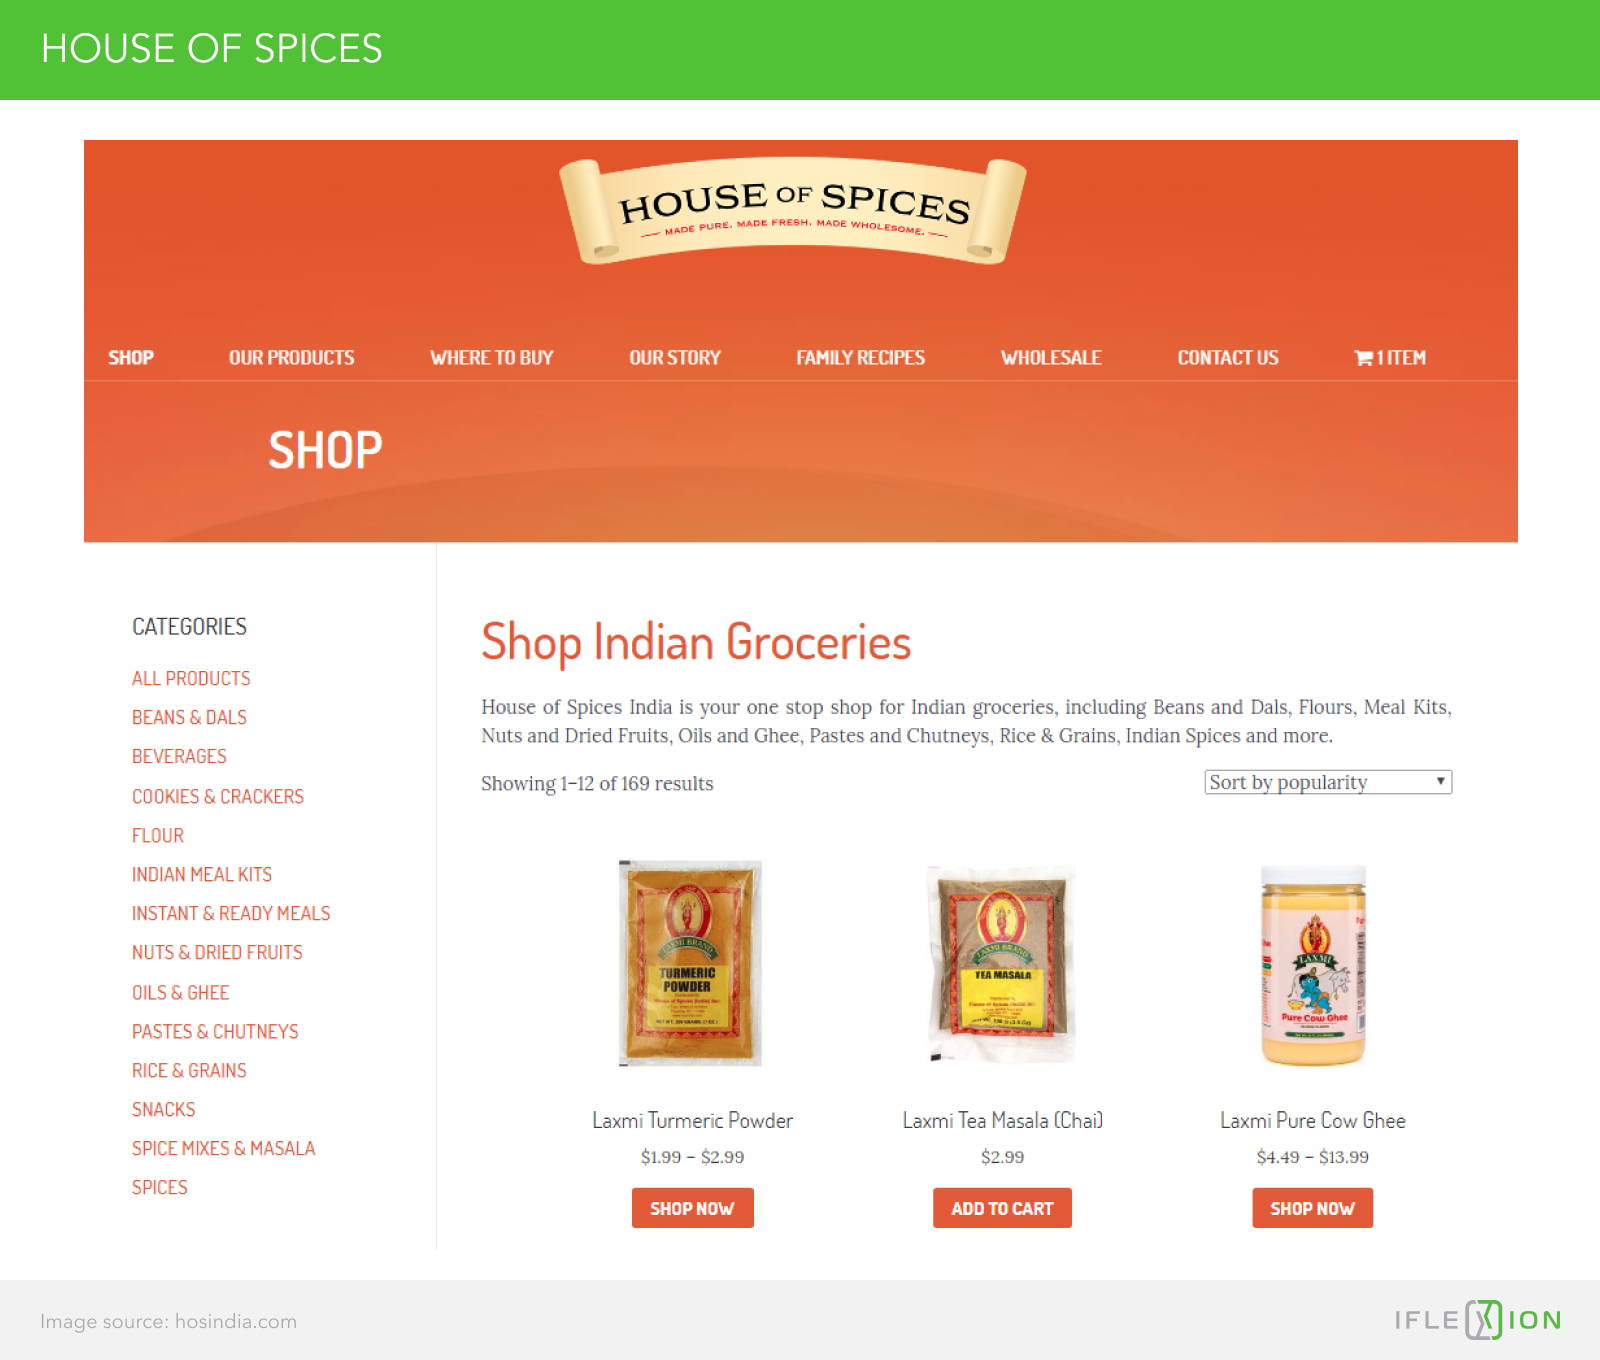 The blog and product catalog of the House of Spices